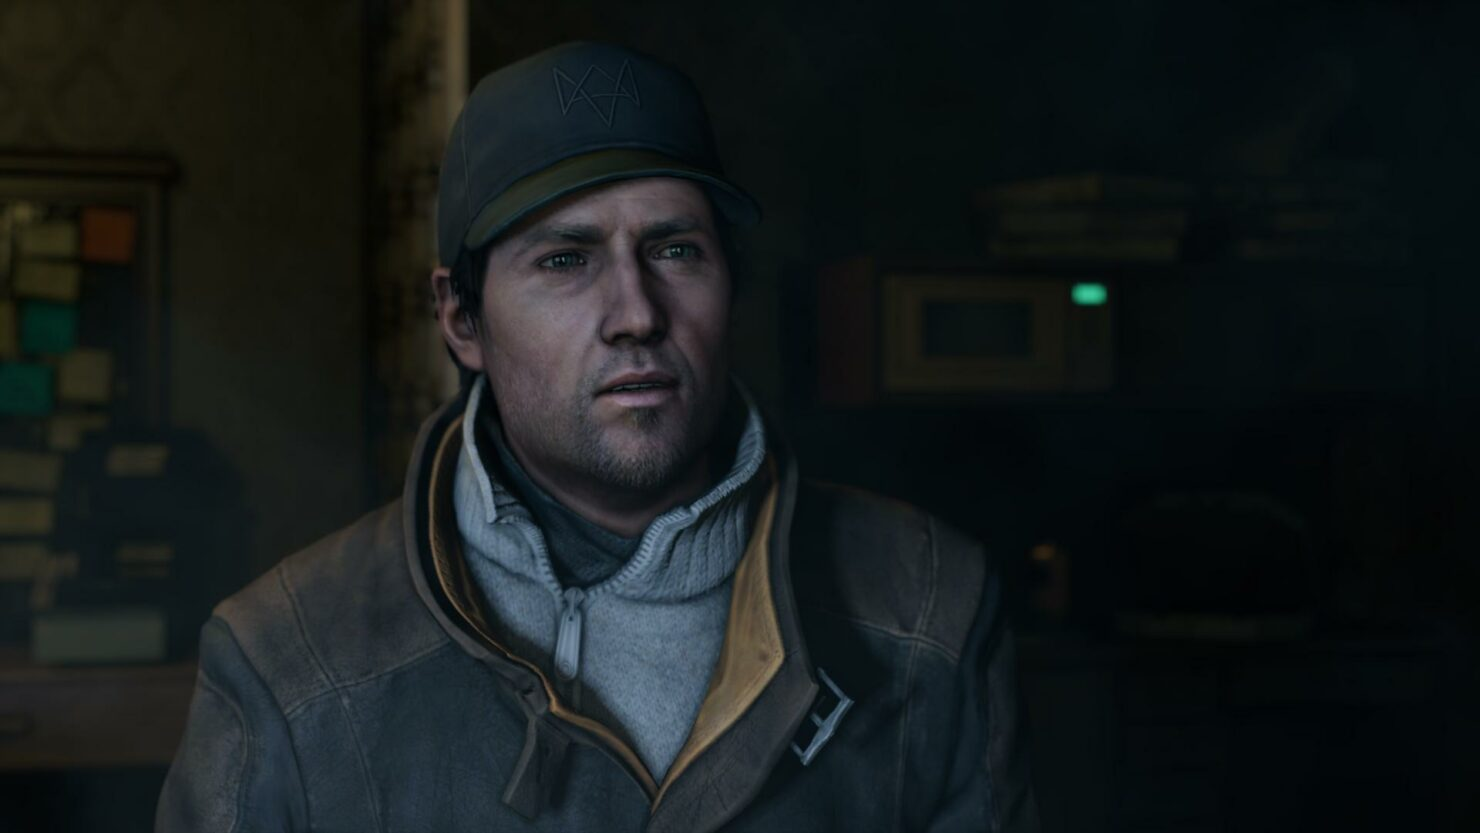 watch_dogs-2014-05-24-11-47-19-60